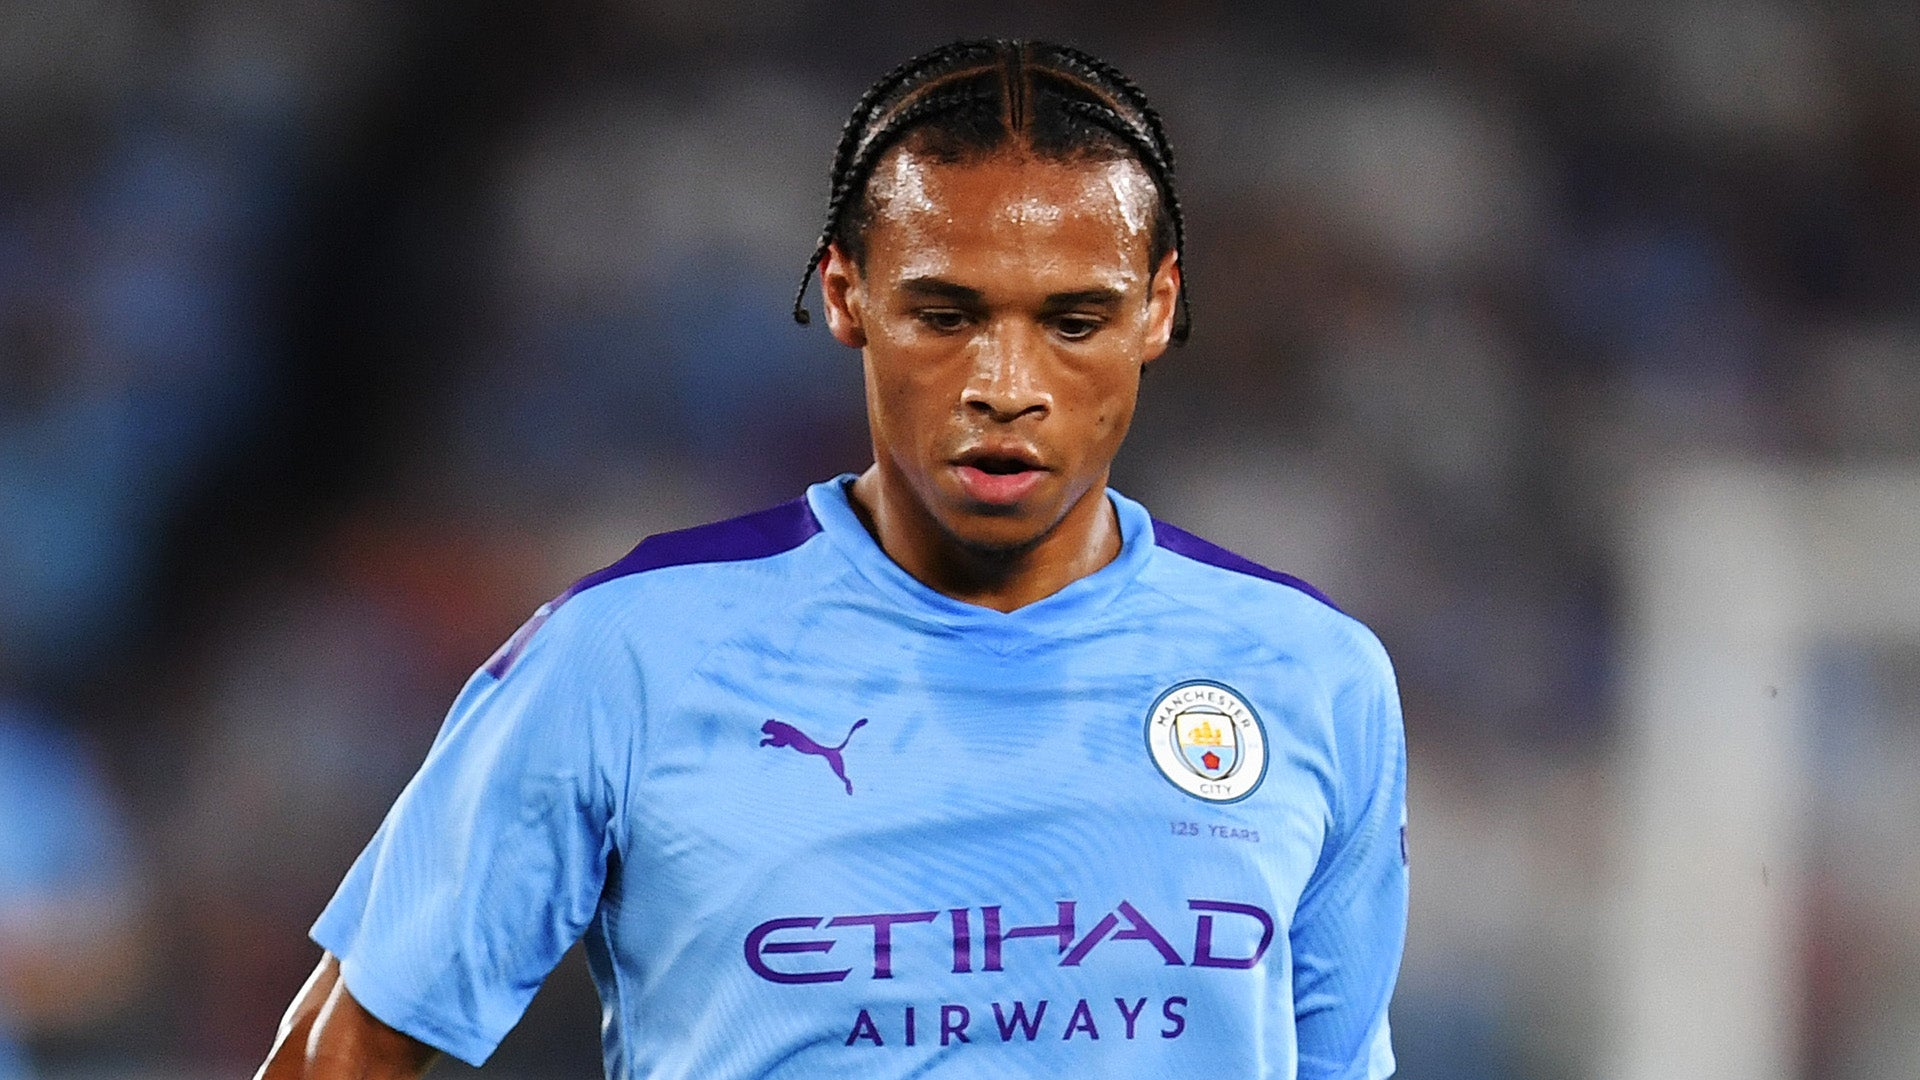 Bayern Munich agree to sign Leroy Sane on five-year deal Report